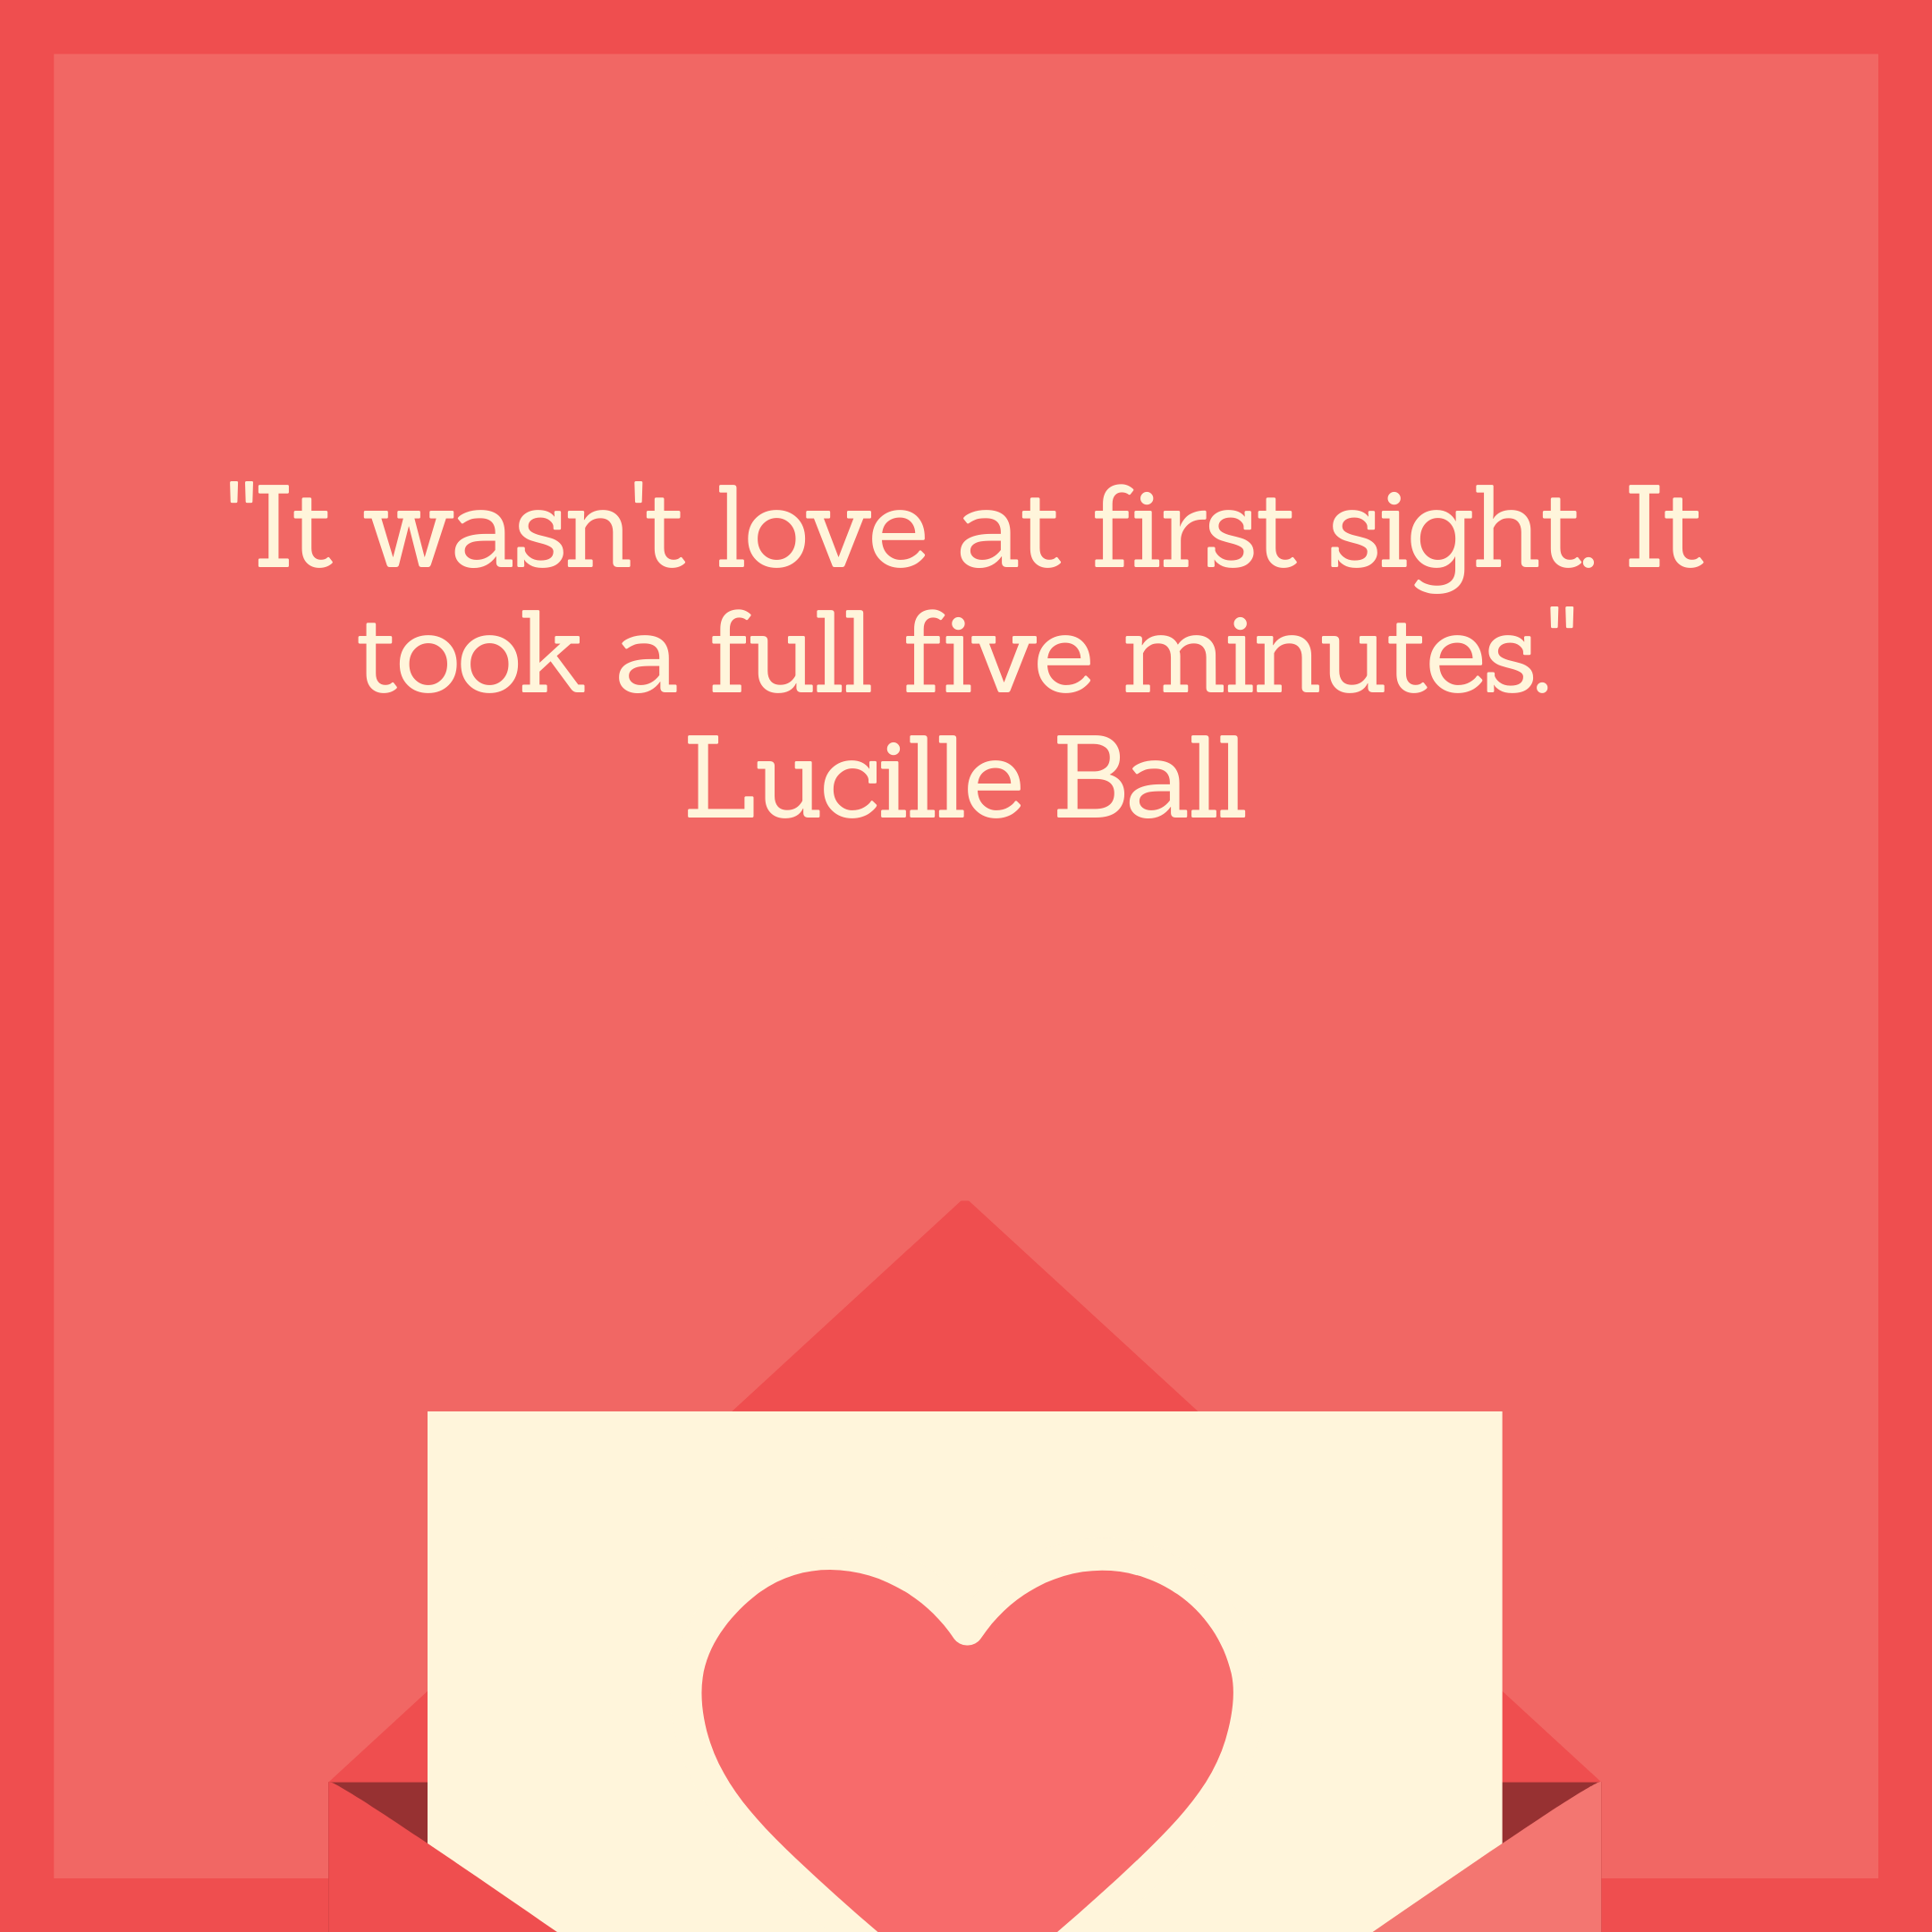 """It wasn't love at first sight. It took a full five minutes."" Lucille Ball"